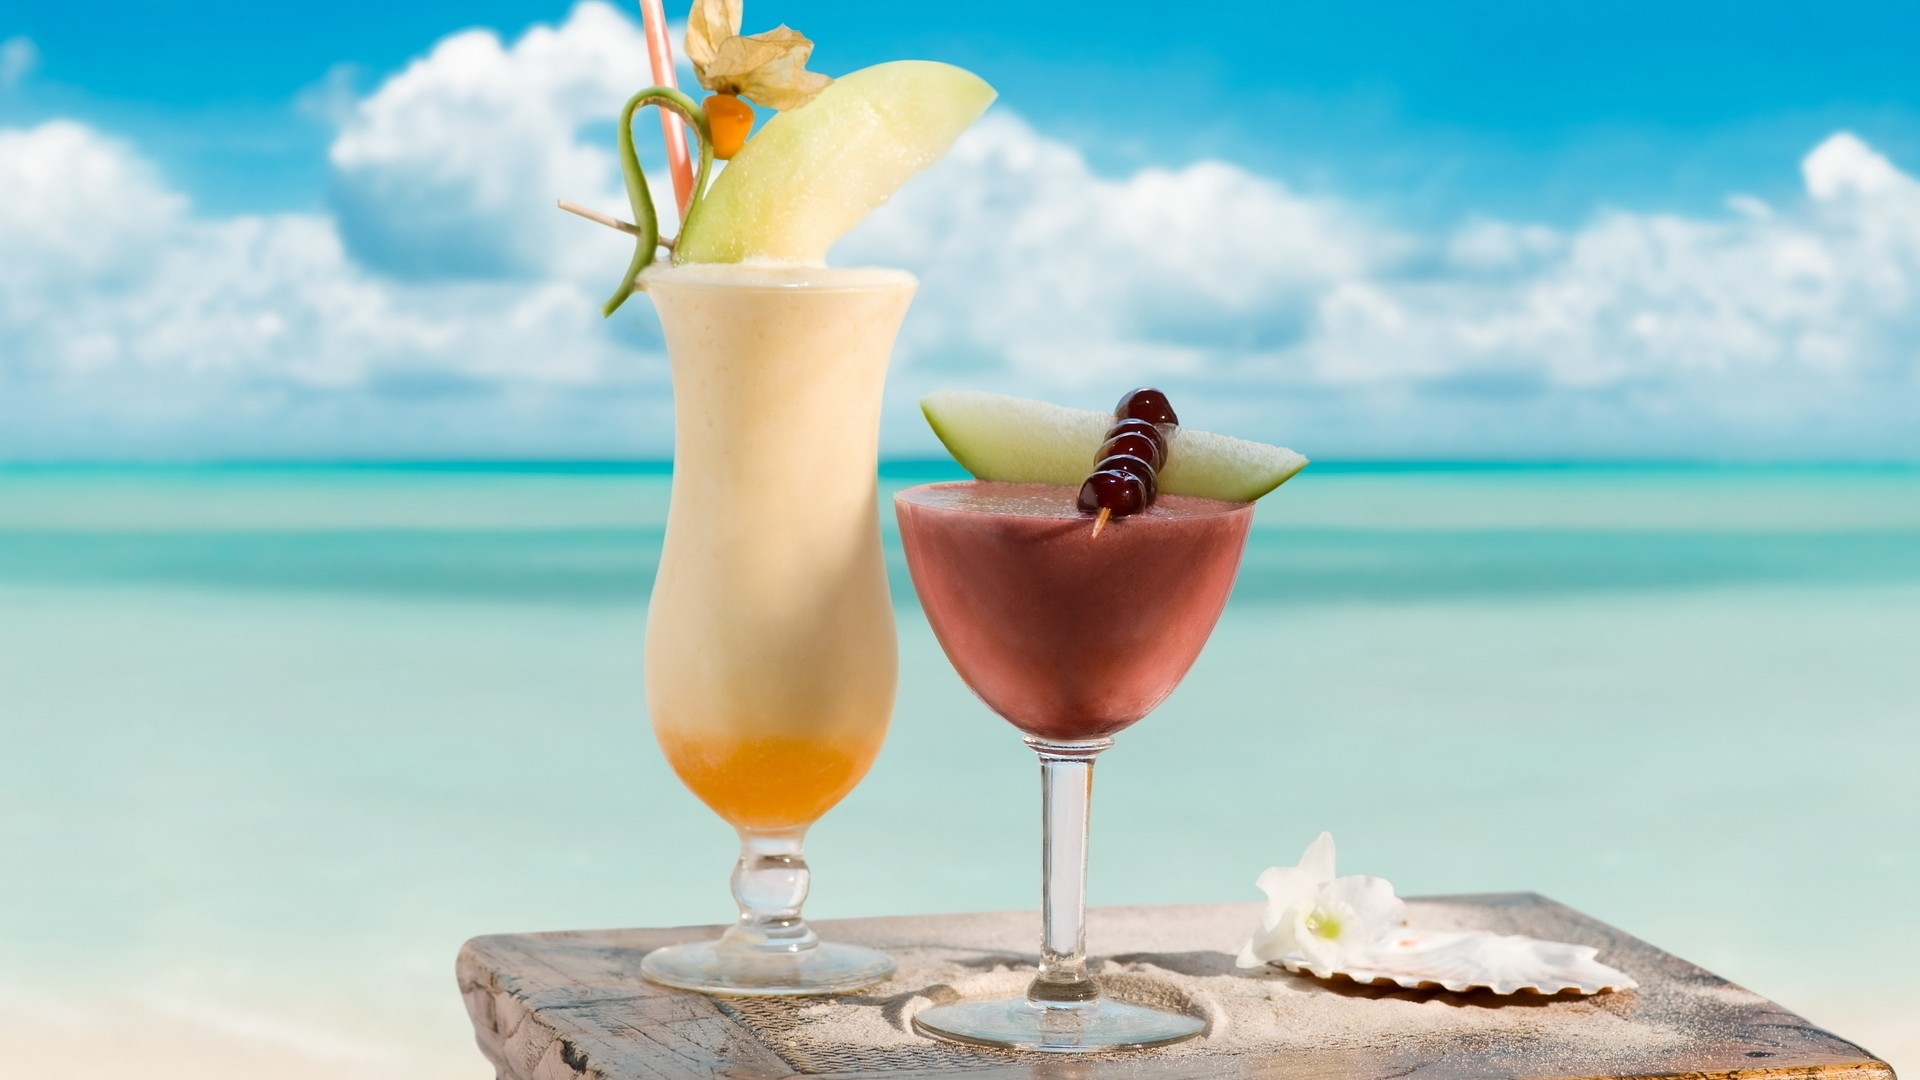 1920x1080 beach-drinks-best-hd-wallpapers-free-downloaded-for-